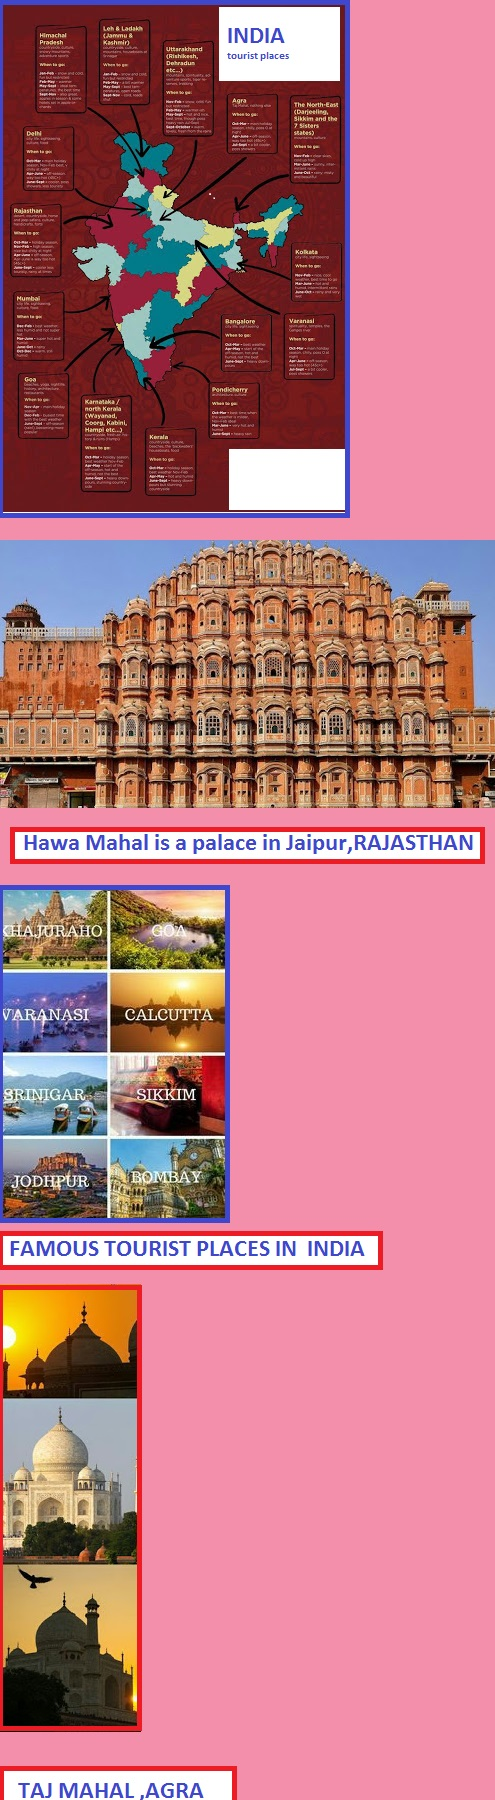 HERITAGE AND POPULAR TOURIST PLACES IN INDIA